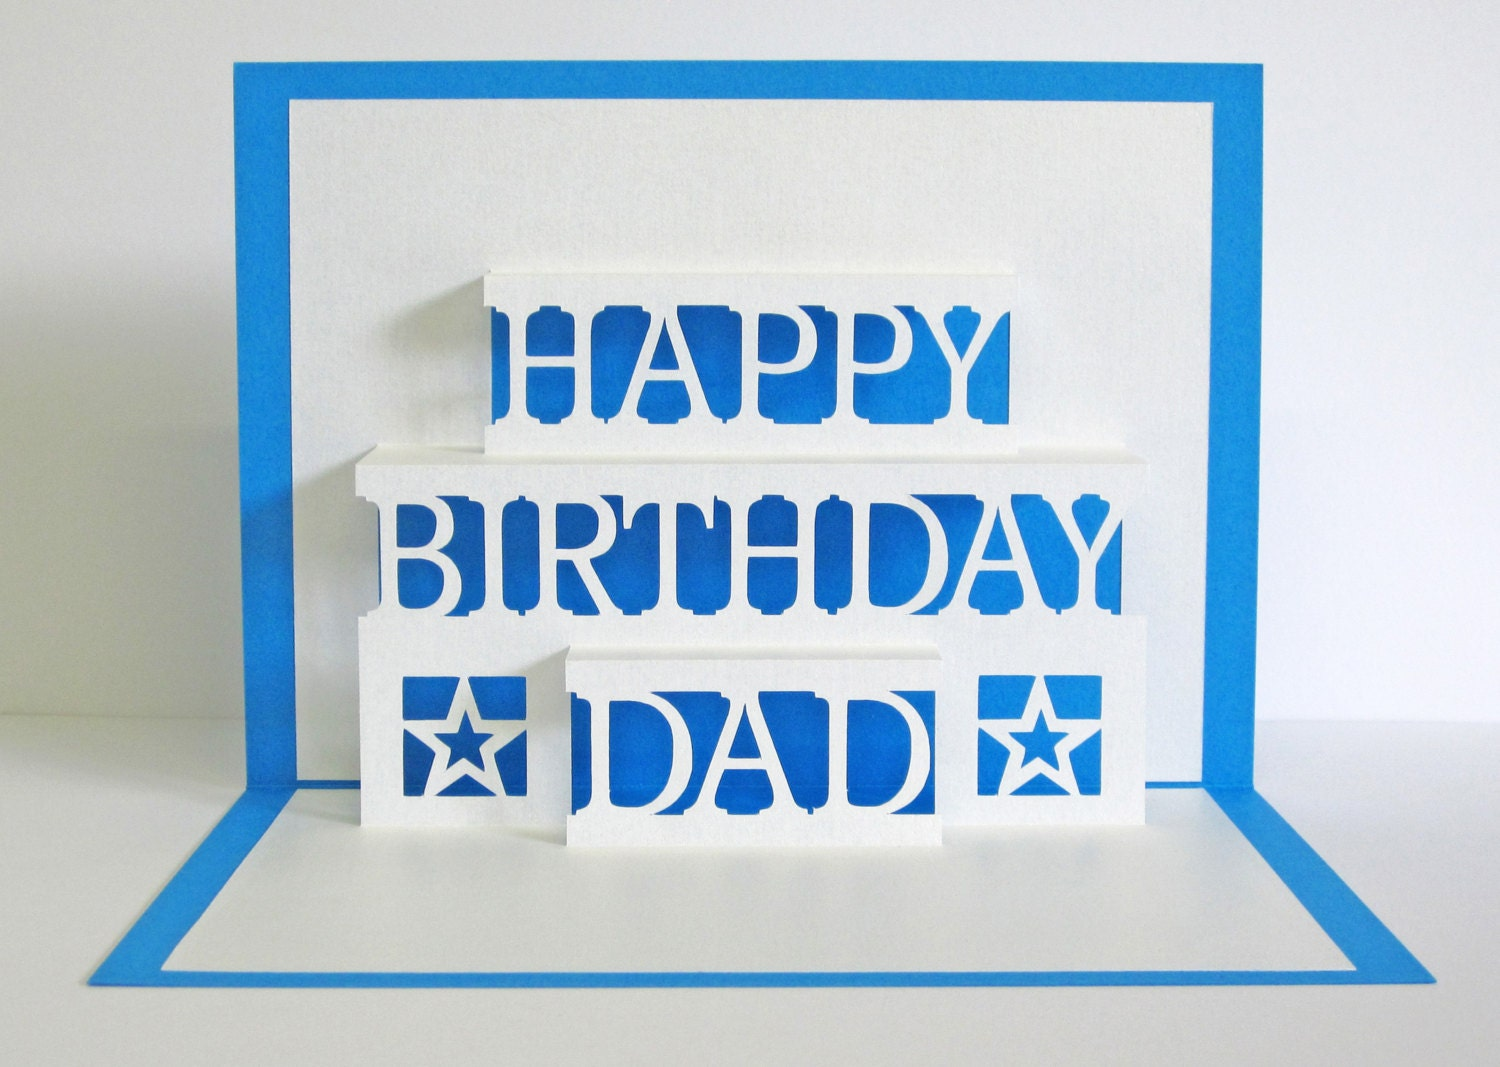 Papa geburtstagskarte 3d pop up happy birthday dad card for Pop up geburtstagskarte